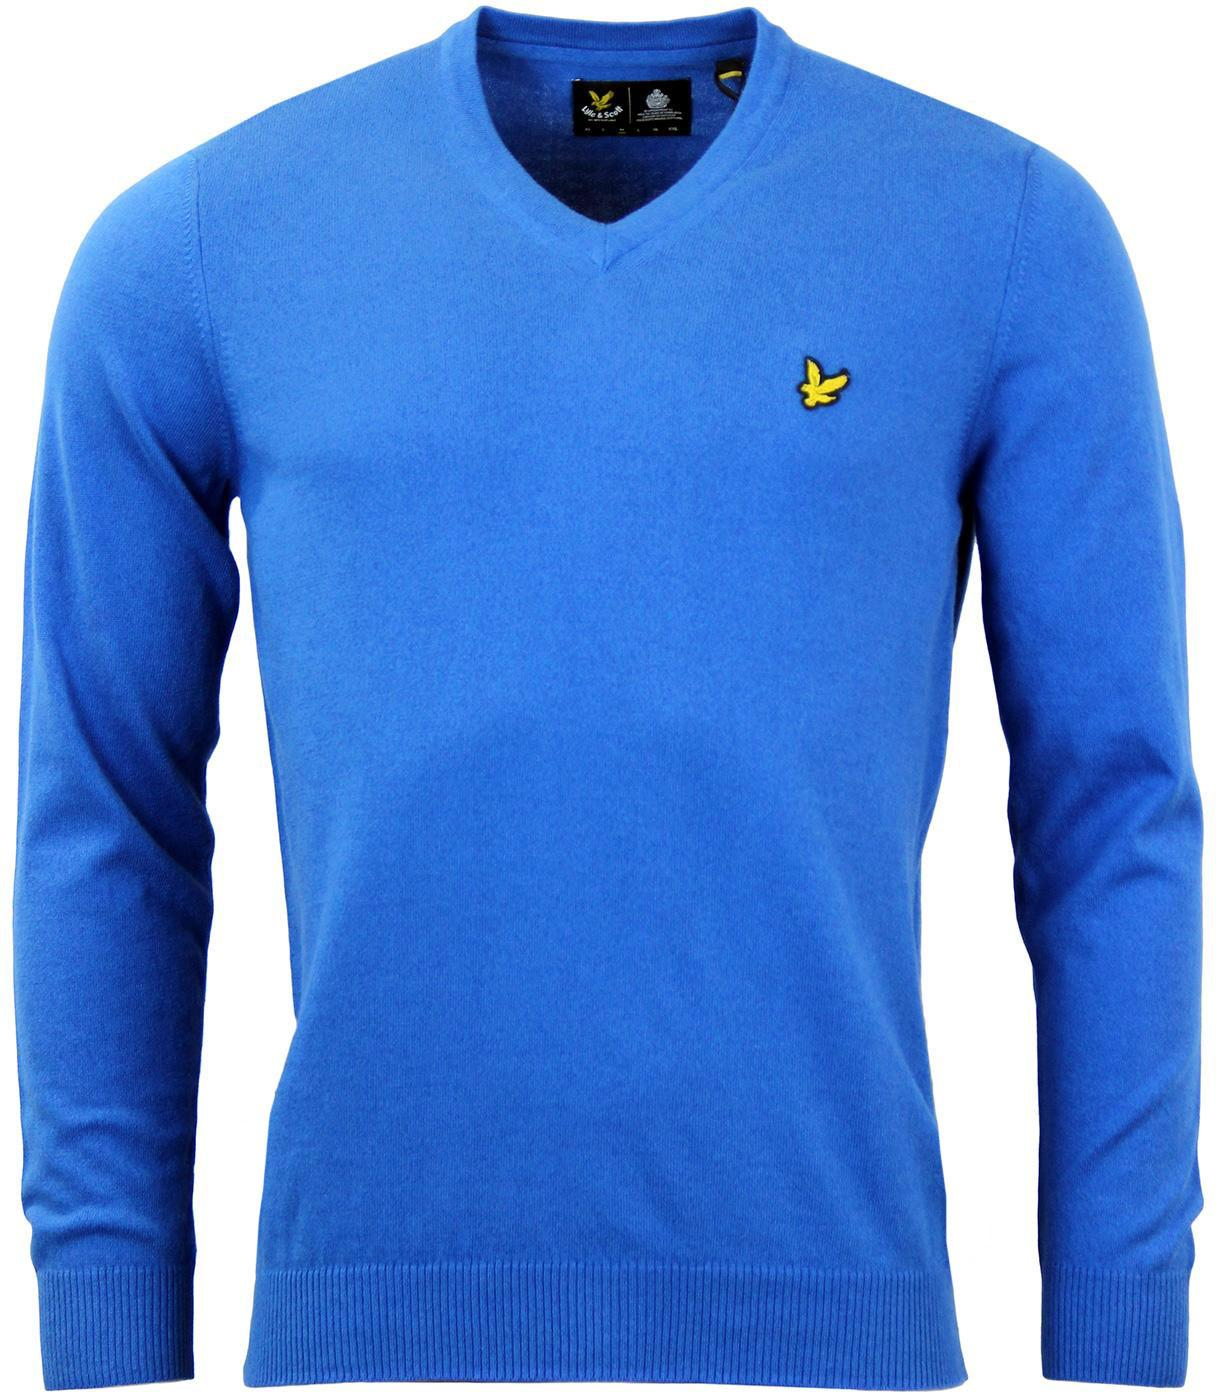 LYLE & SCOTT Retro Mod Merino V-Neck Knit Jumper